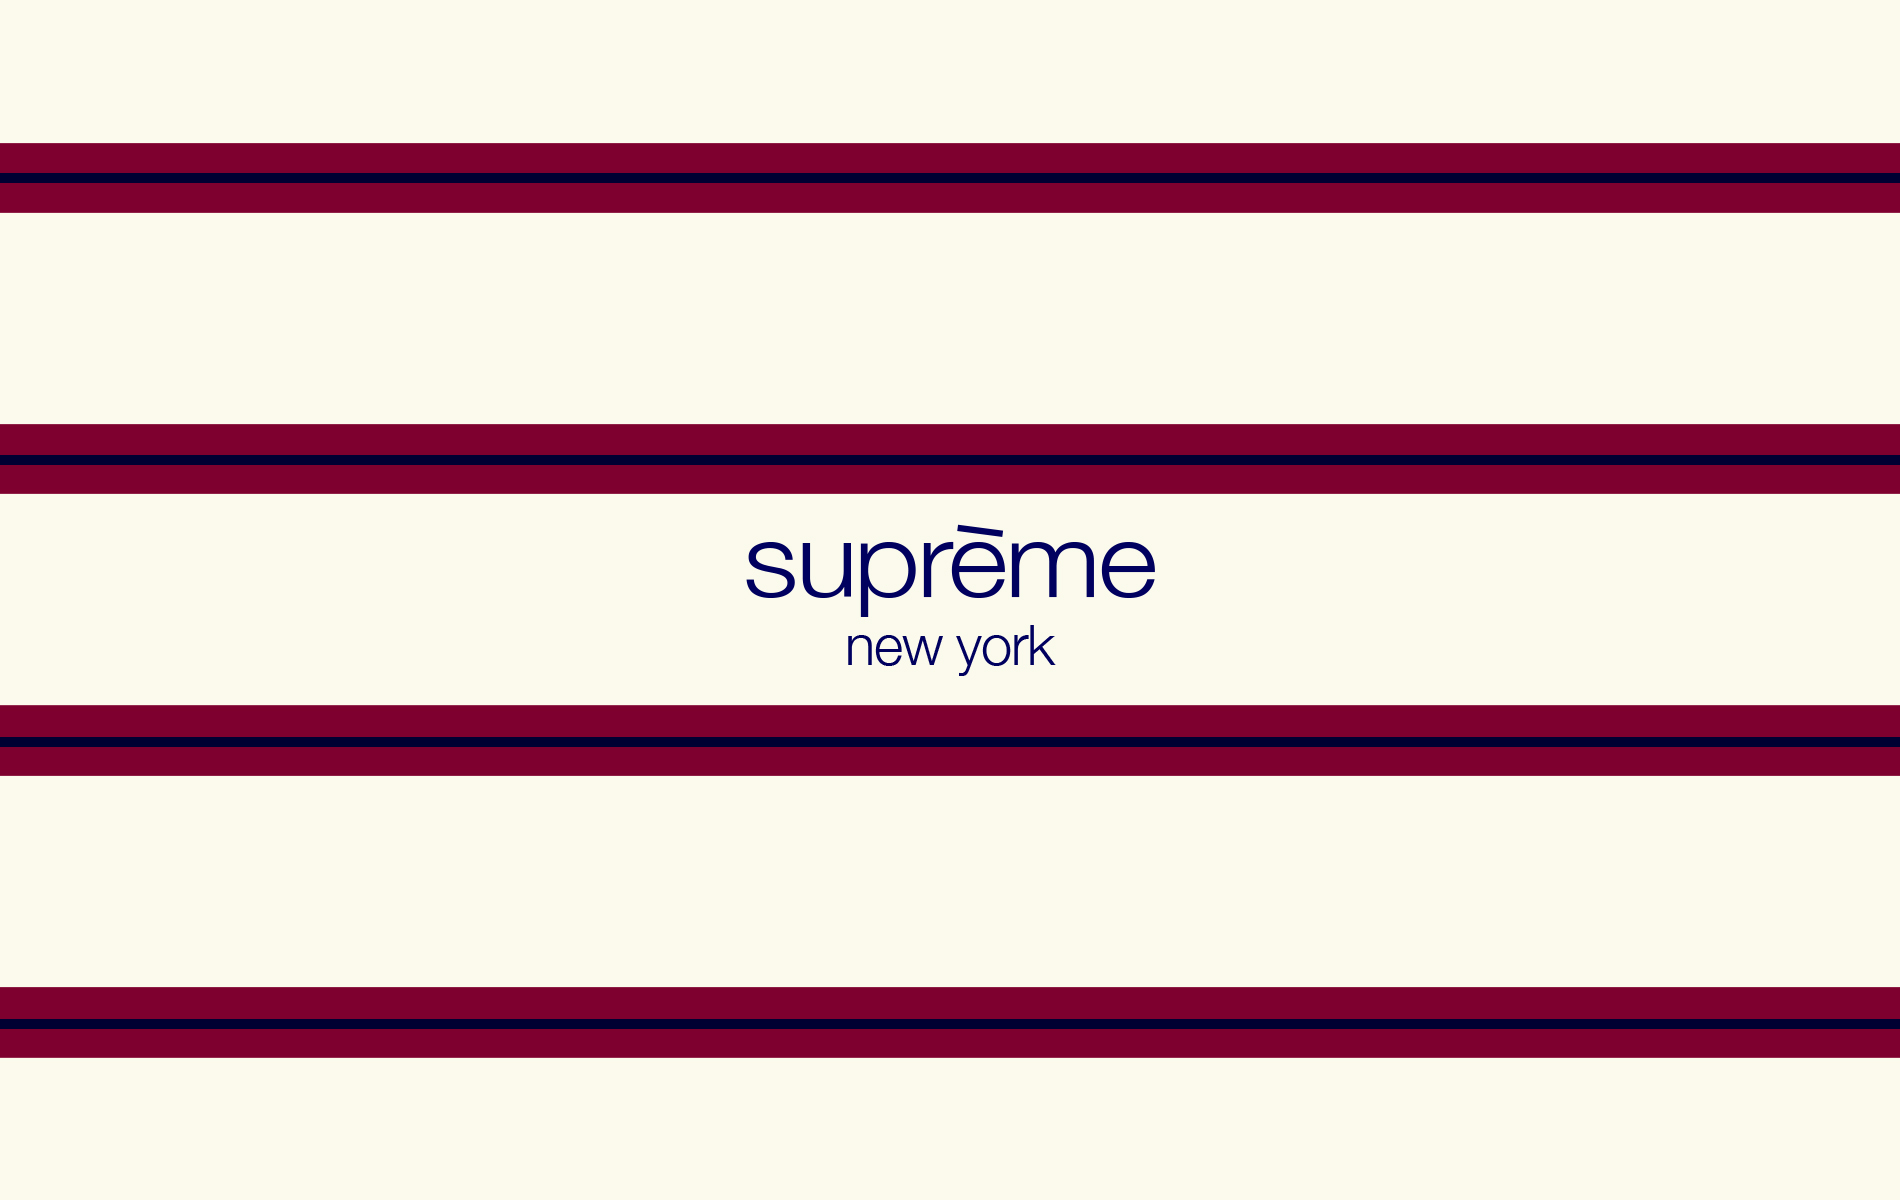 Supreme Wallpapers desktop and mobile HD 4